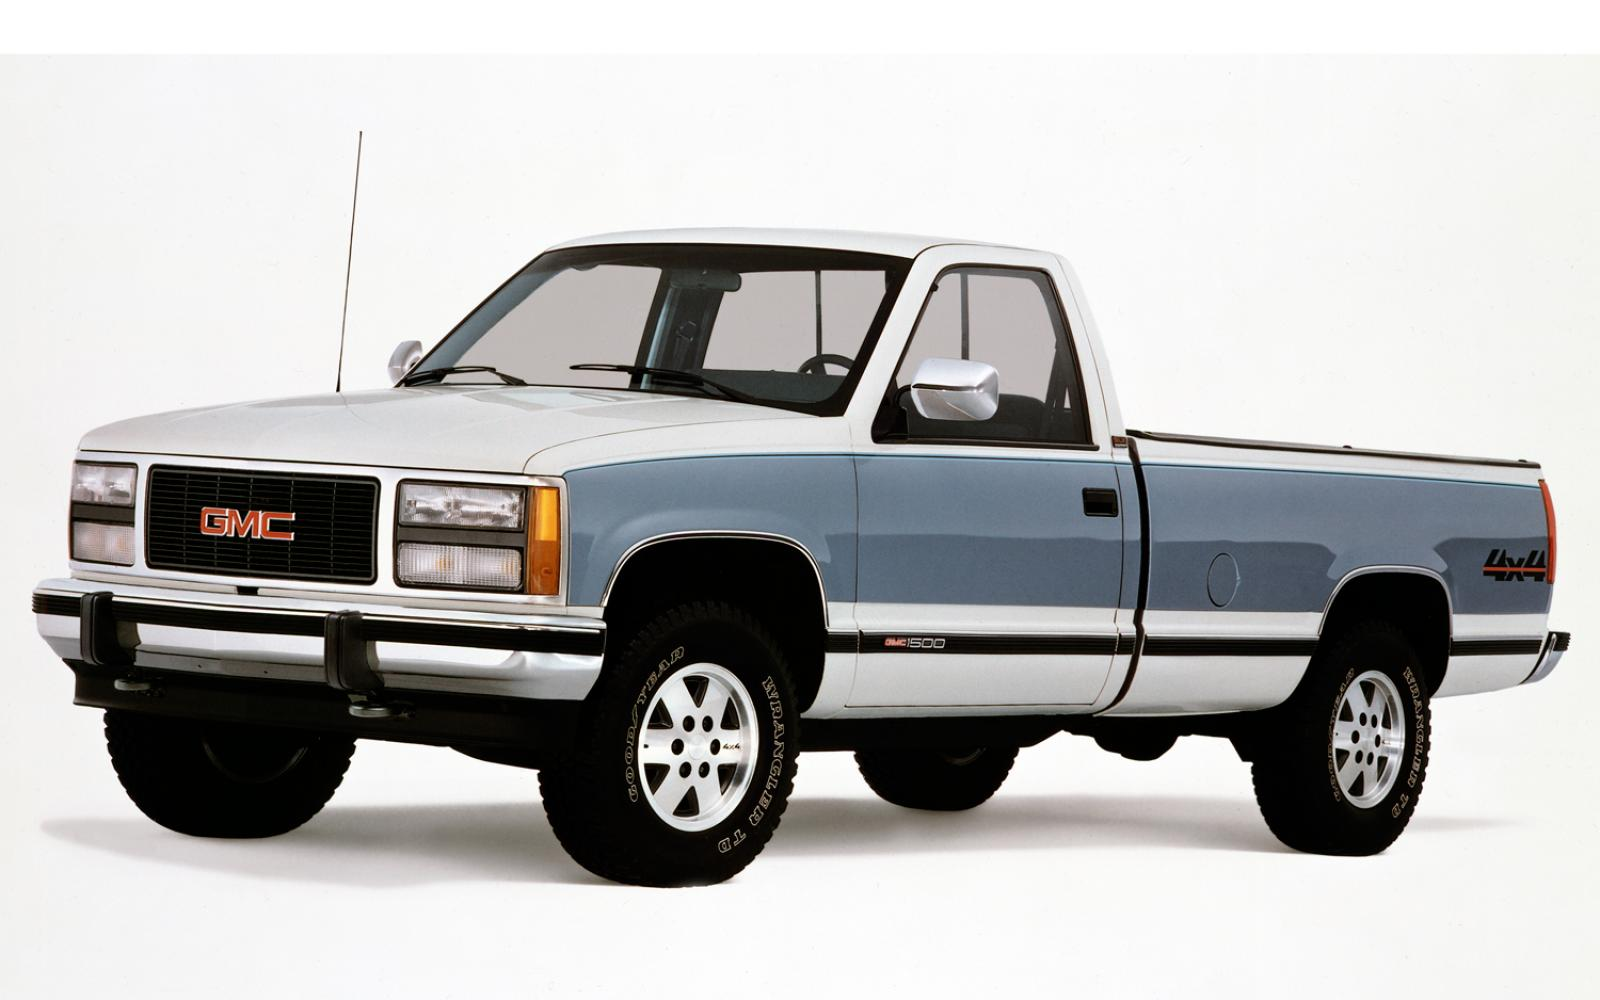 1990 gmc sierra 1500 information and photos zombiedrive. Black Bedroom Furniture Sets. Home Design Ideas